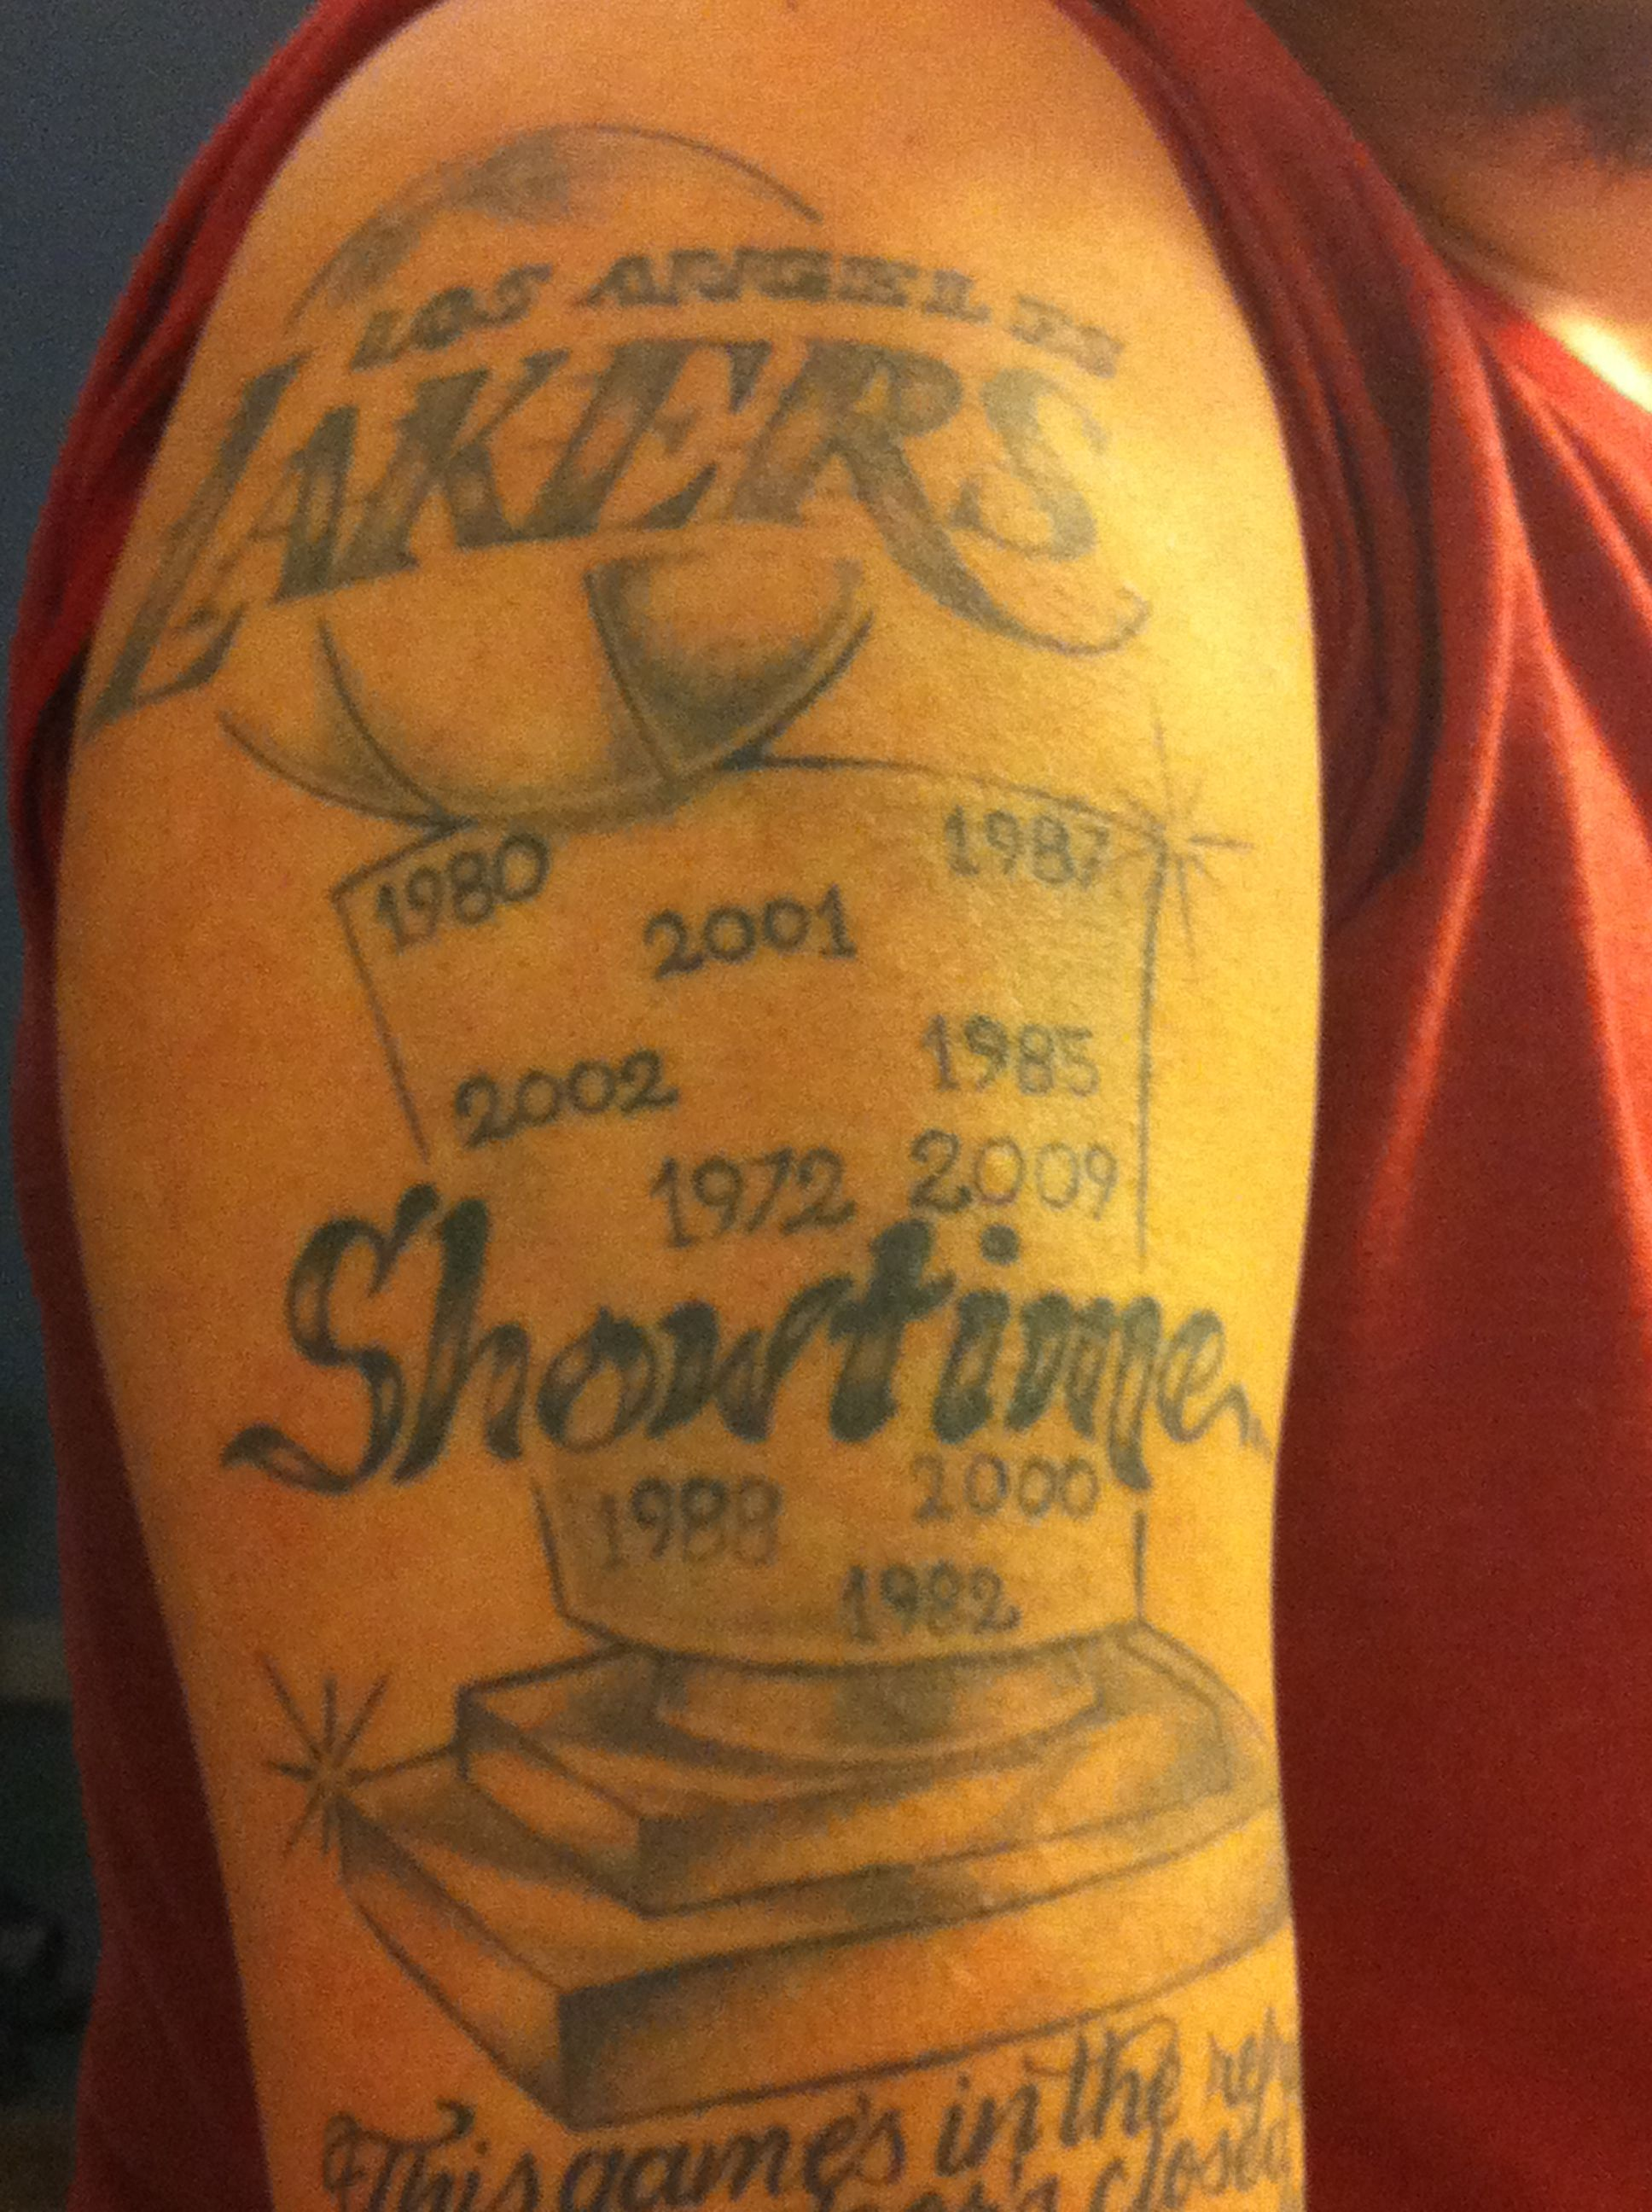 LAKERS TAT!!!! (With images) Lakers, Lakers vs, Nba teams